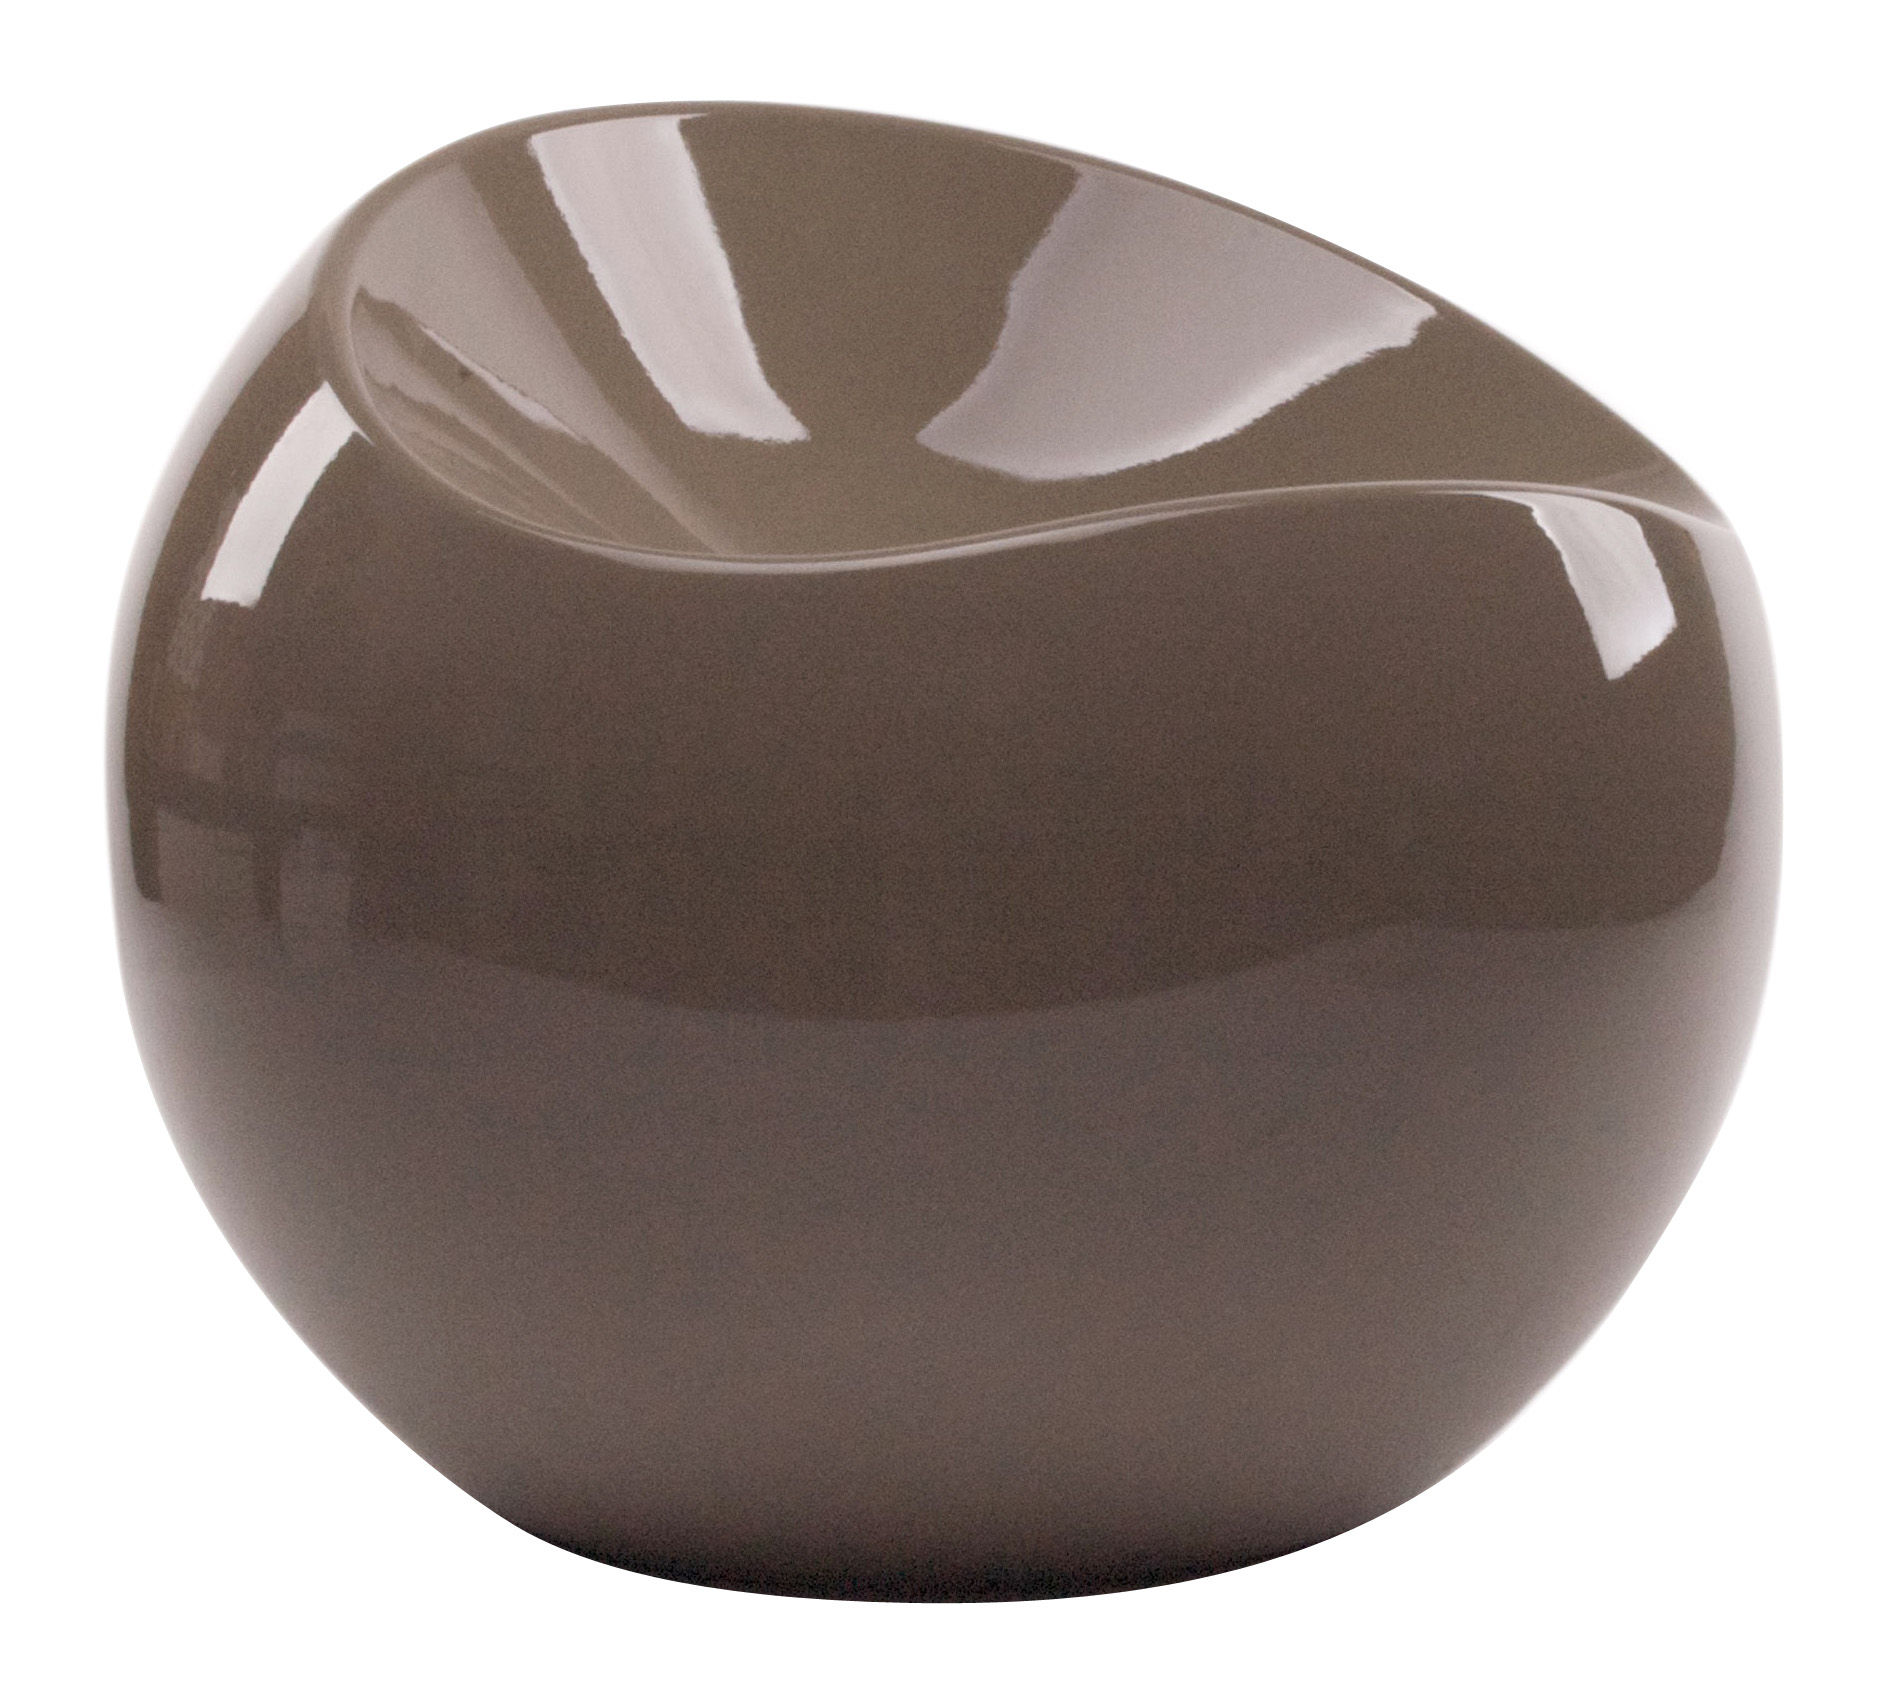 Ball Chair Pouf Taupe by XL Boom